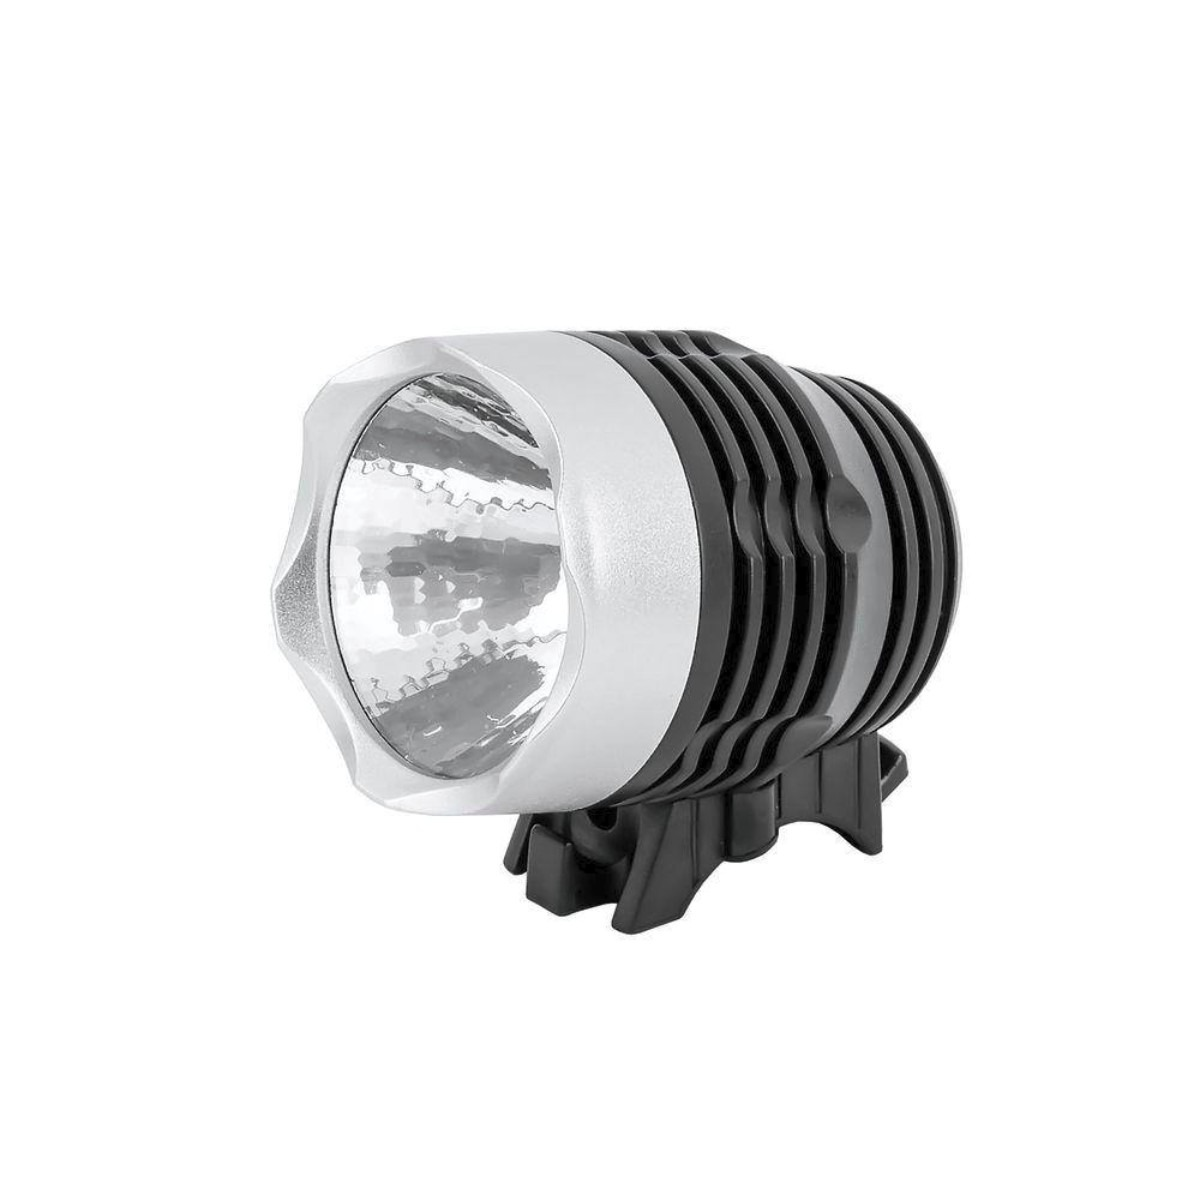 LANTERNA LED MULTIFUNCIONAL